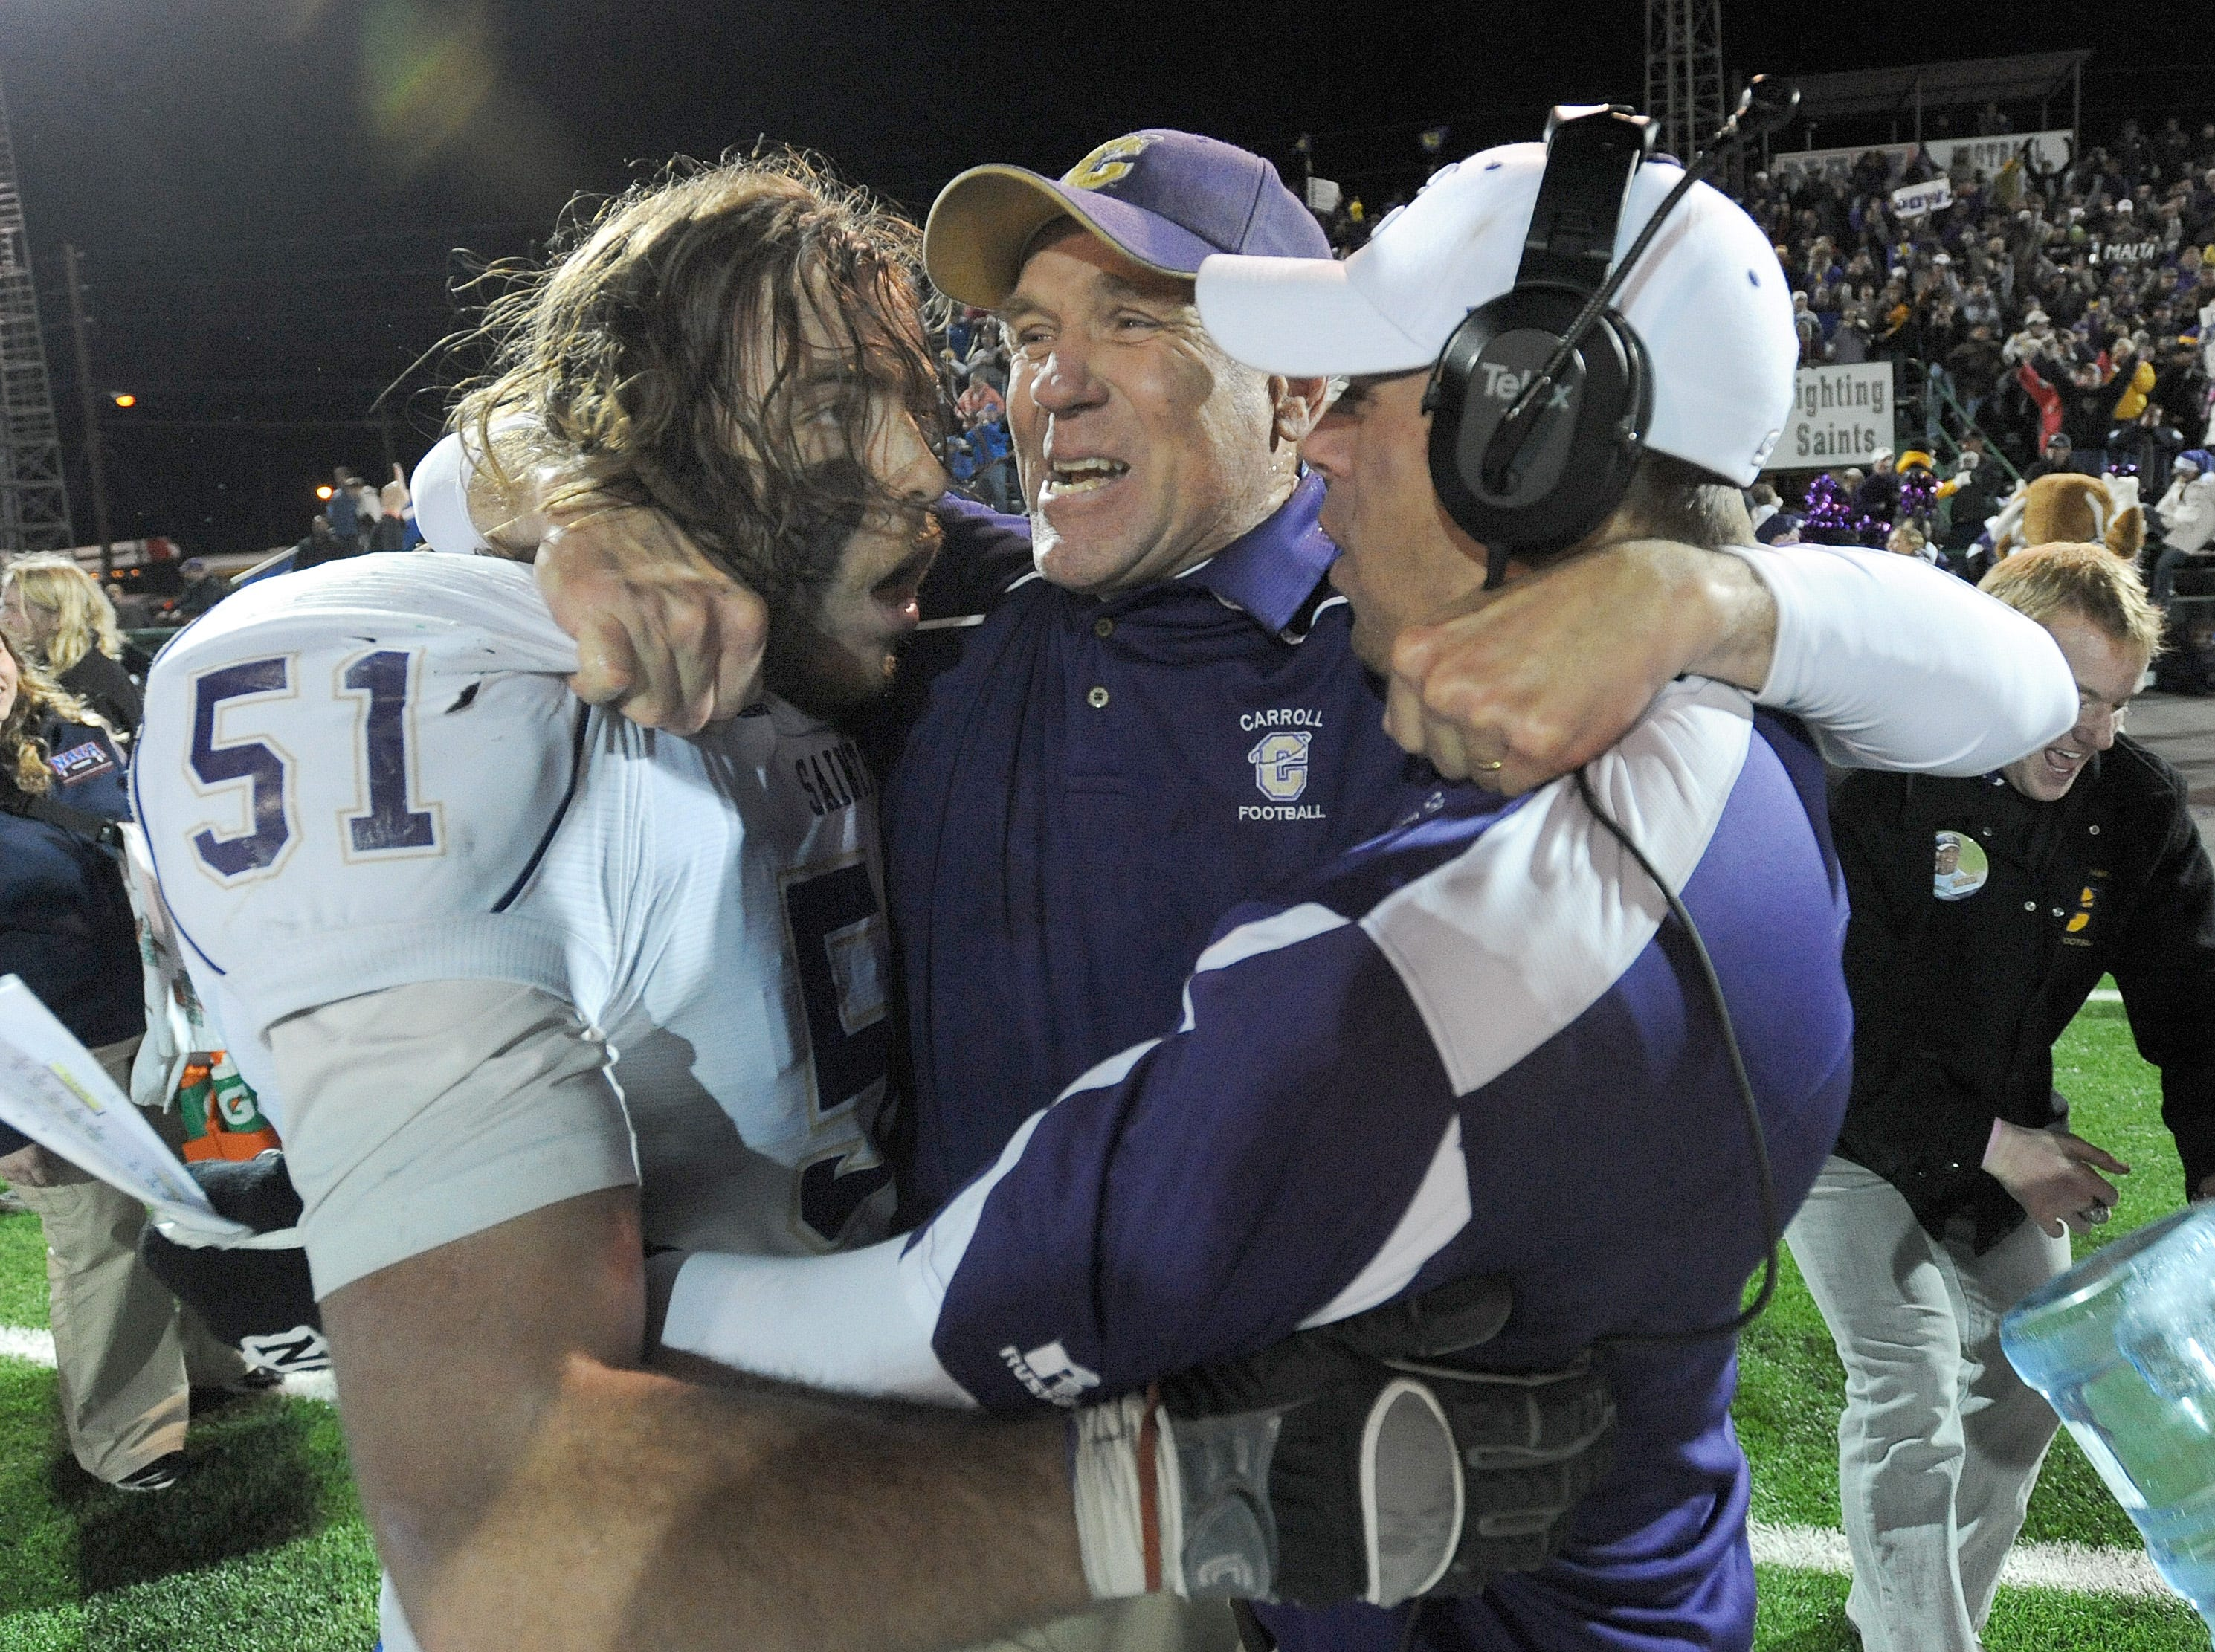 Carroll College coach Mike Van Diest, center, is hugged by linebacker Lynn Mallory and another coach after Carroll College defeated Sioux Falls in the NAIA college football championship game at Brannon Field on Dec. 18, 2010, in Rome, Ga.